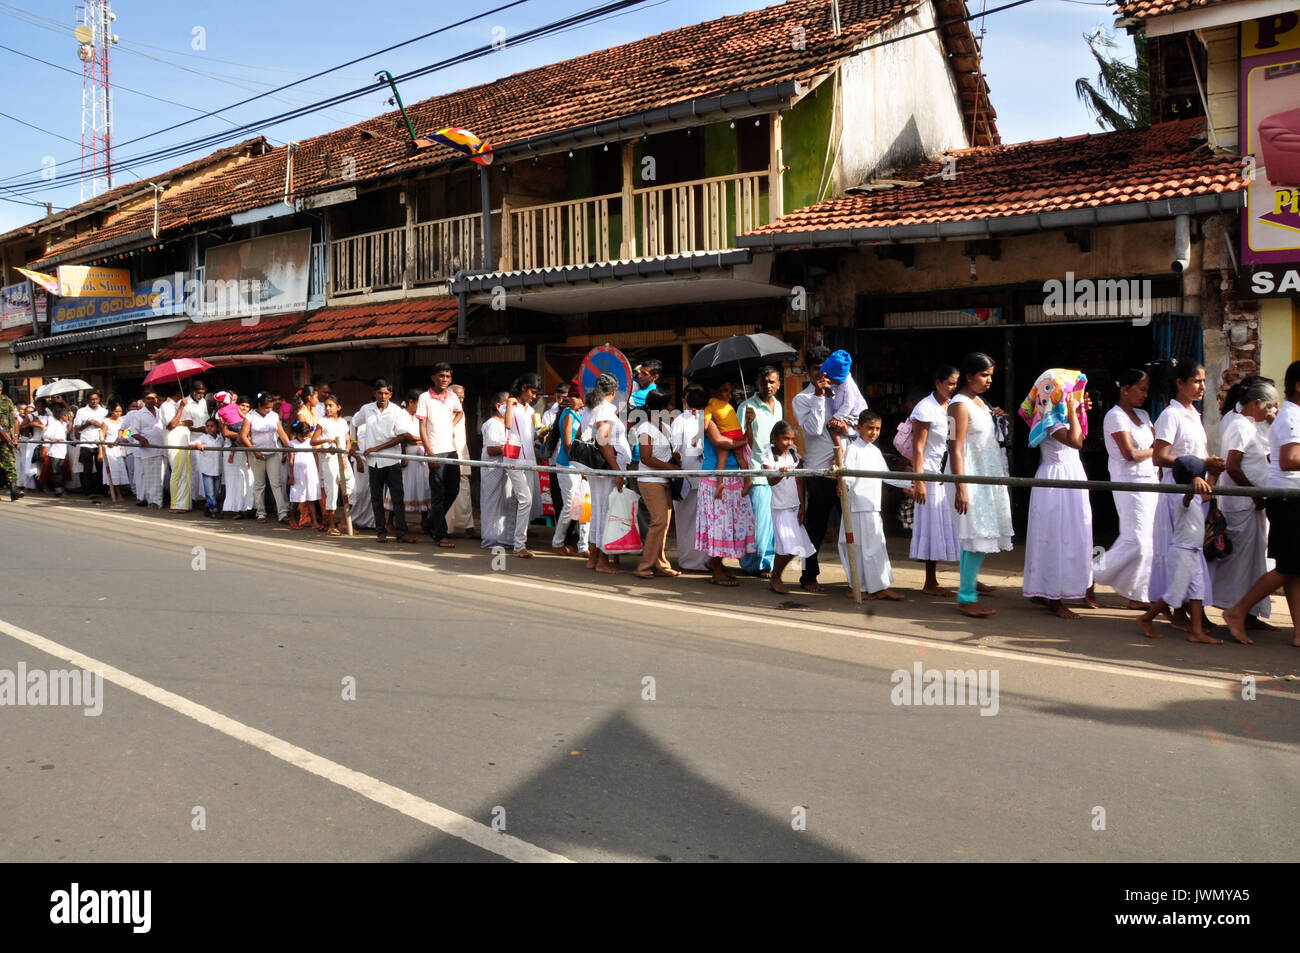 Queuing here to meet a revered religious person in this Sri Lankan town - Stock Image